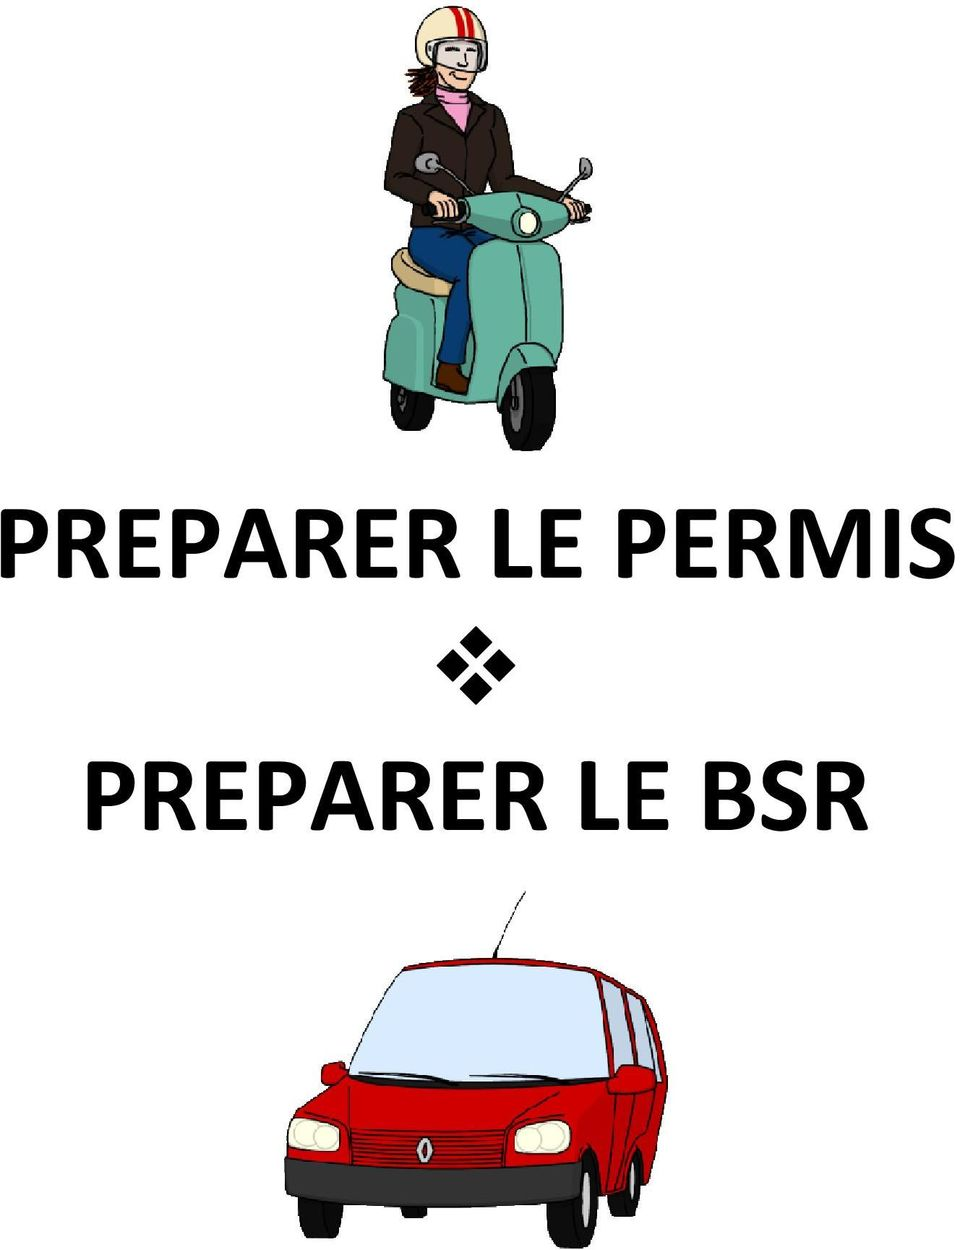 LE BSR